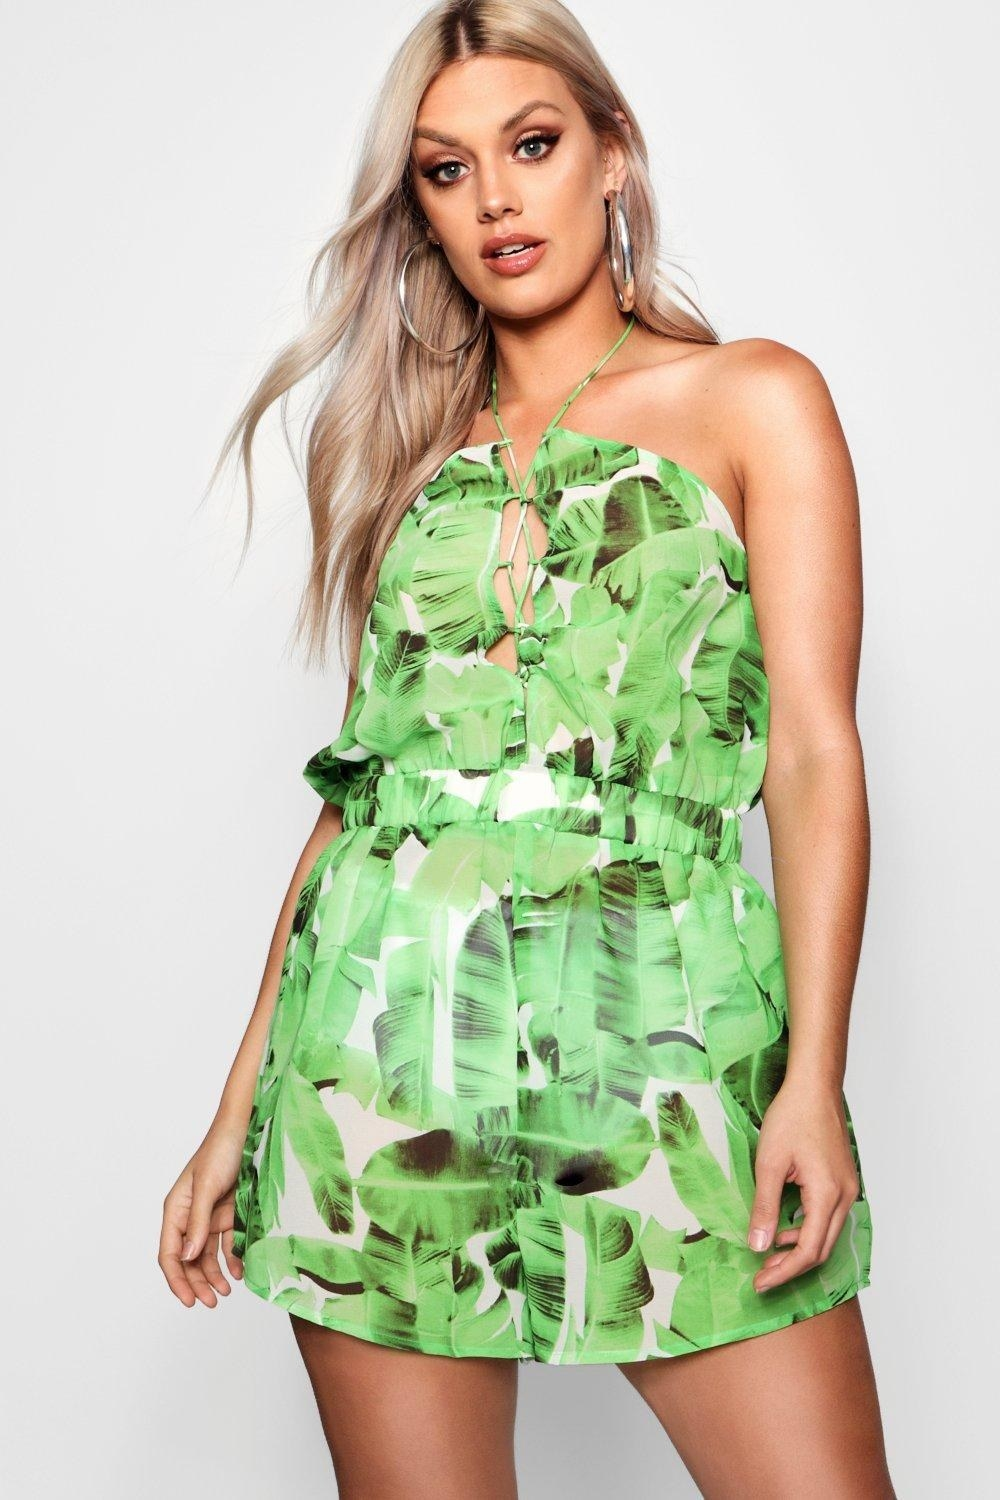 Price: $15 (originally $25; available in sizes 12-18)